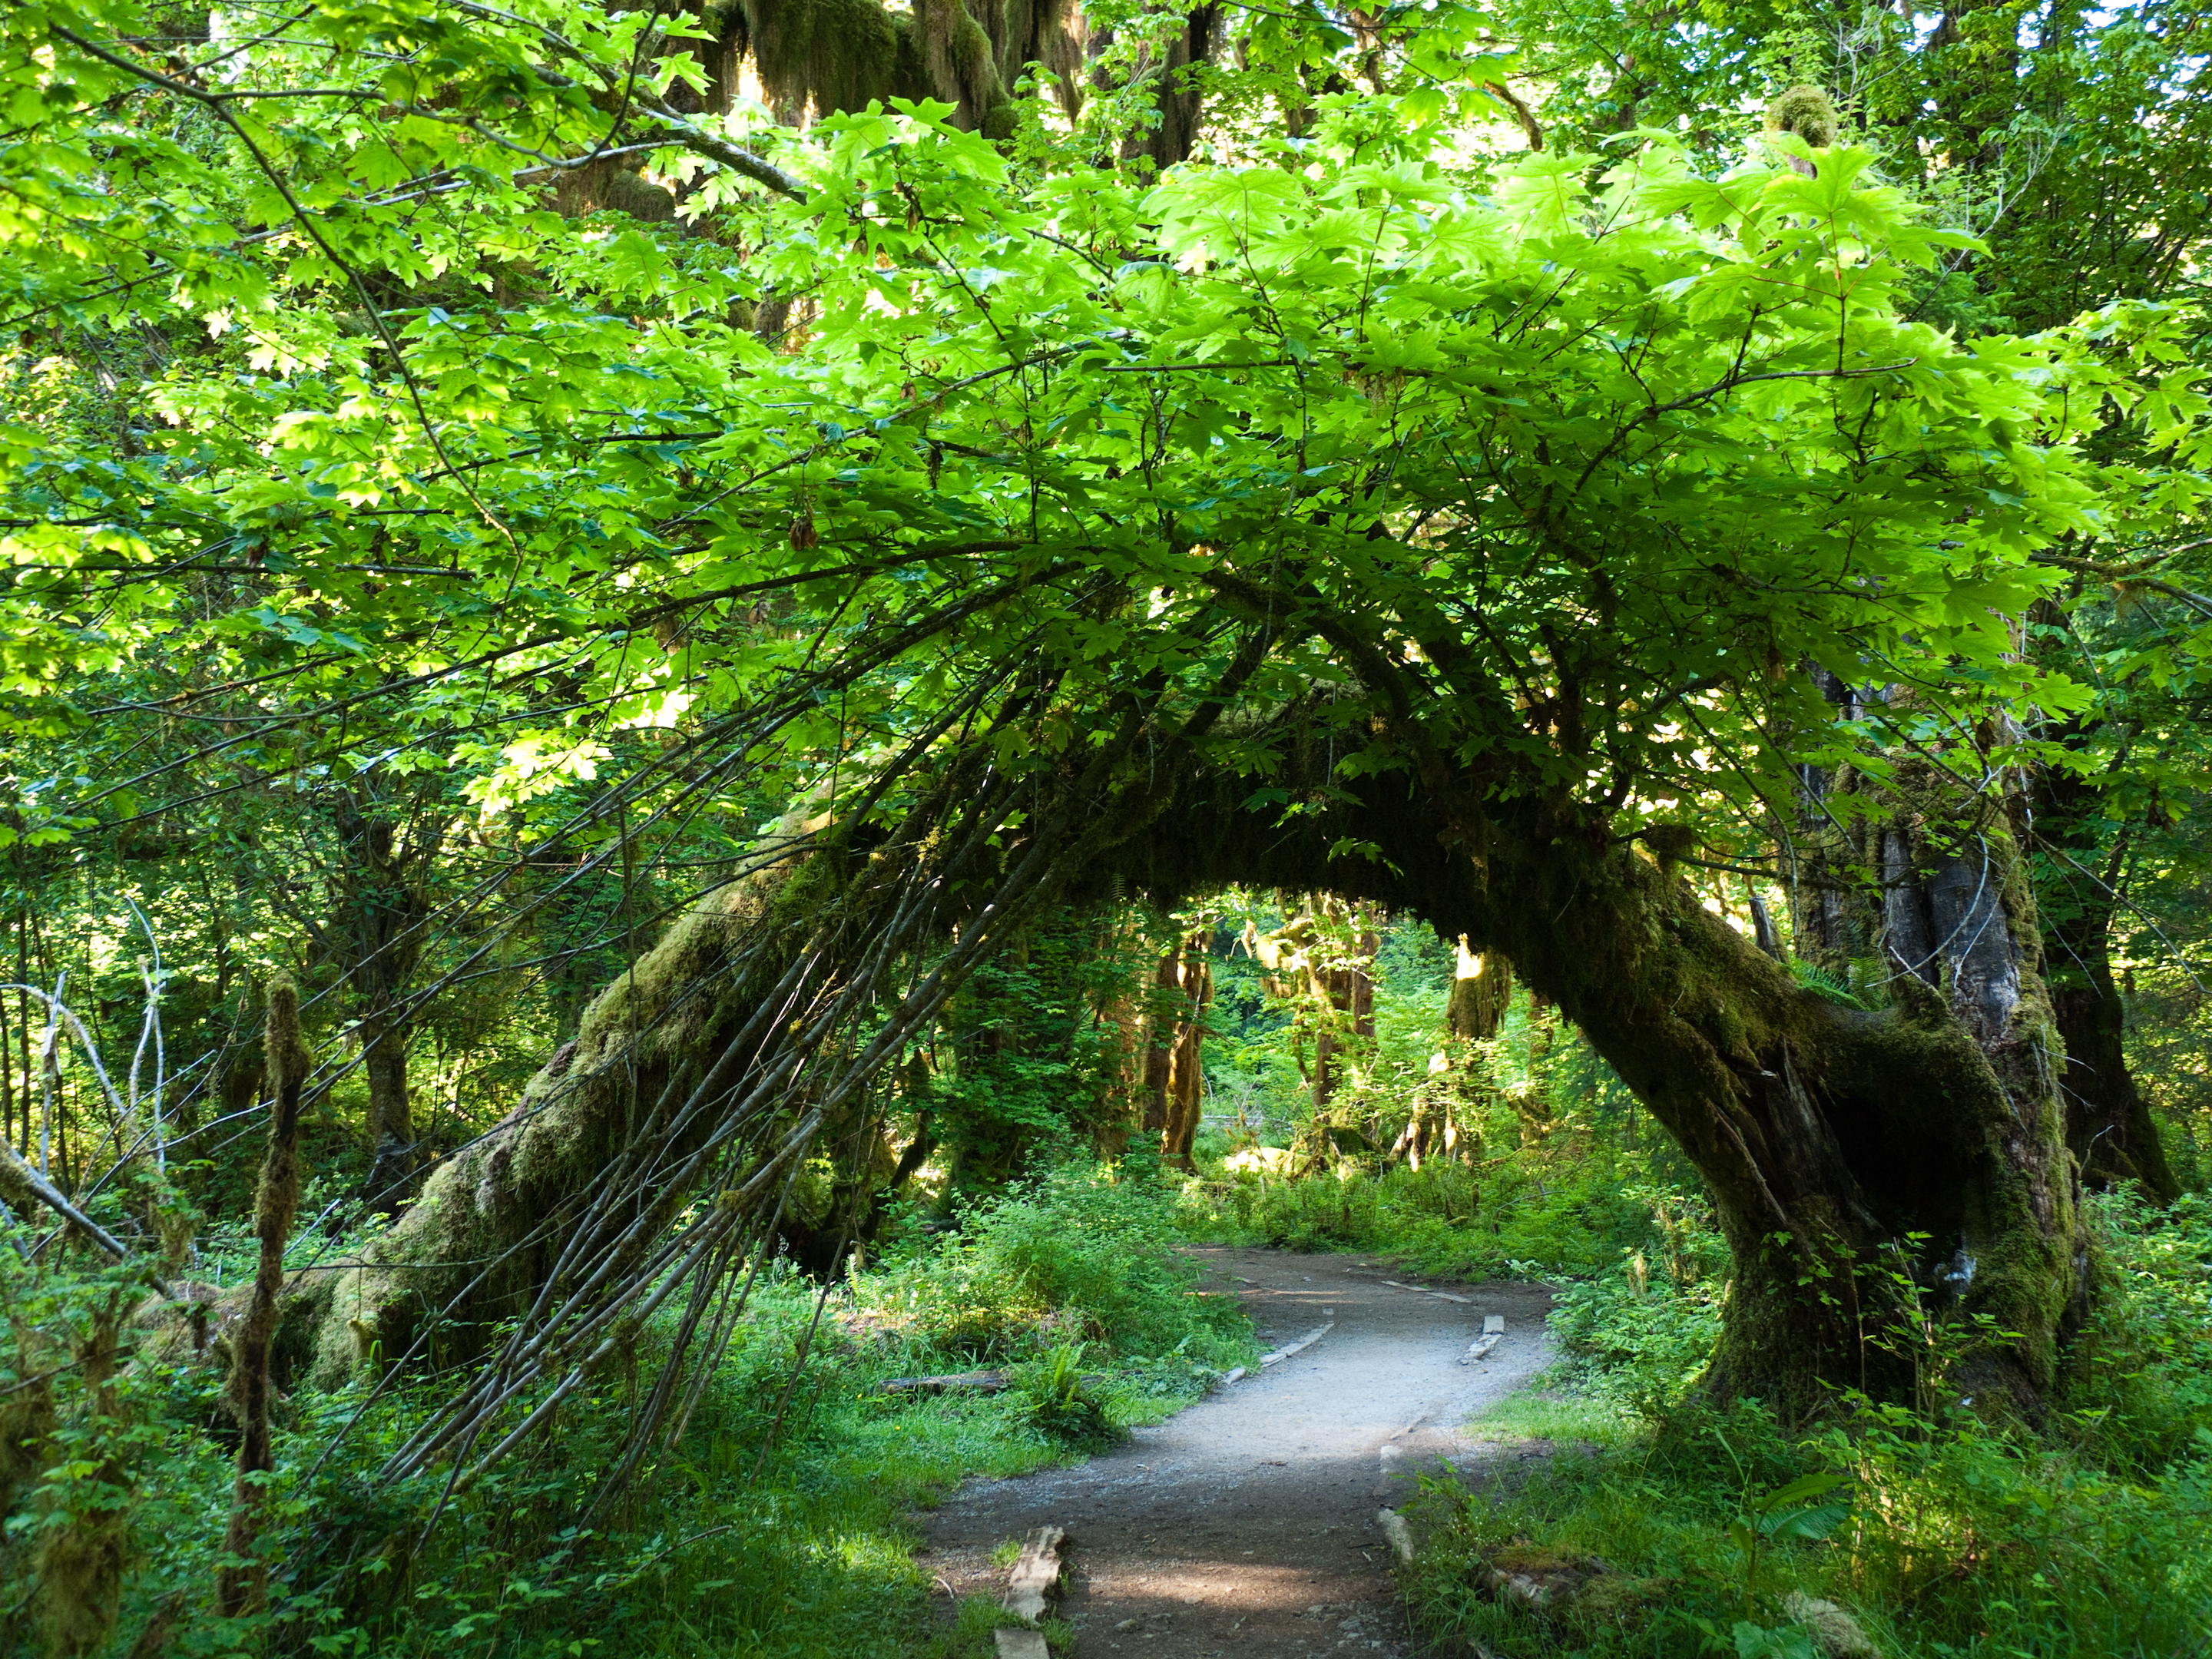 Michigan State Hd Wallpaper The Hall Of Mosses Trail In Washington Is Like Something